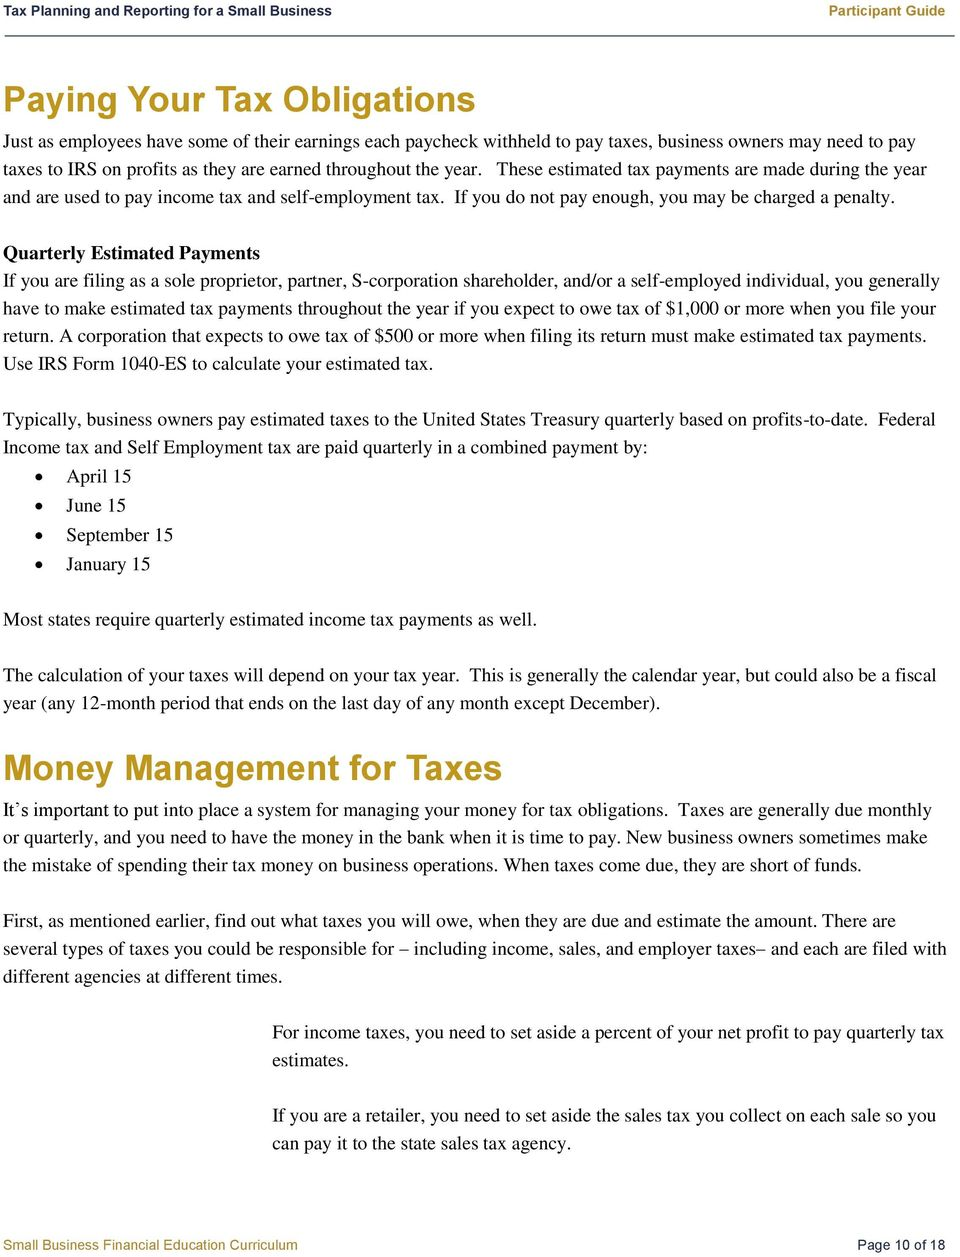 Quarterly Estimated Payments If you are filing as a sole proprietor, partner, S-corporation shareholder, and/or a self-employed individual, you generally have to make estimated tax payments